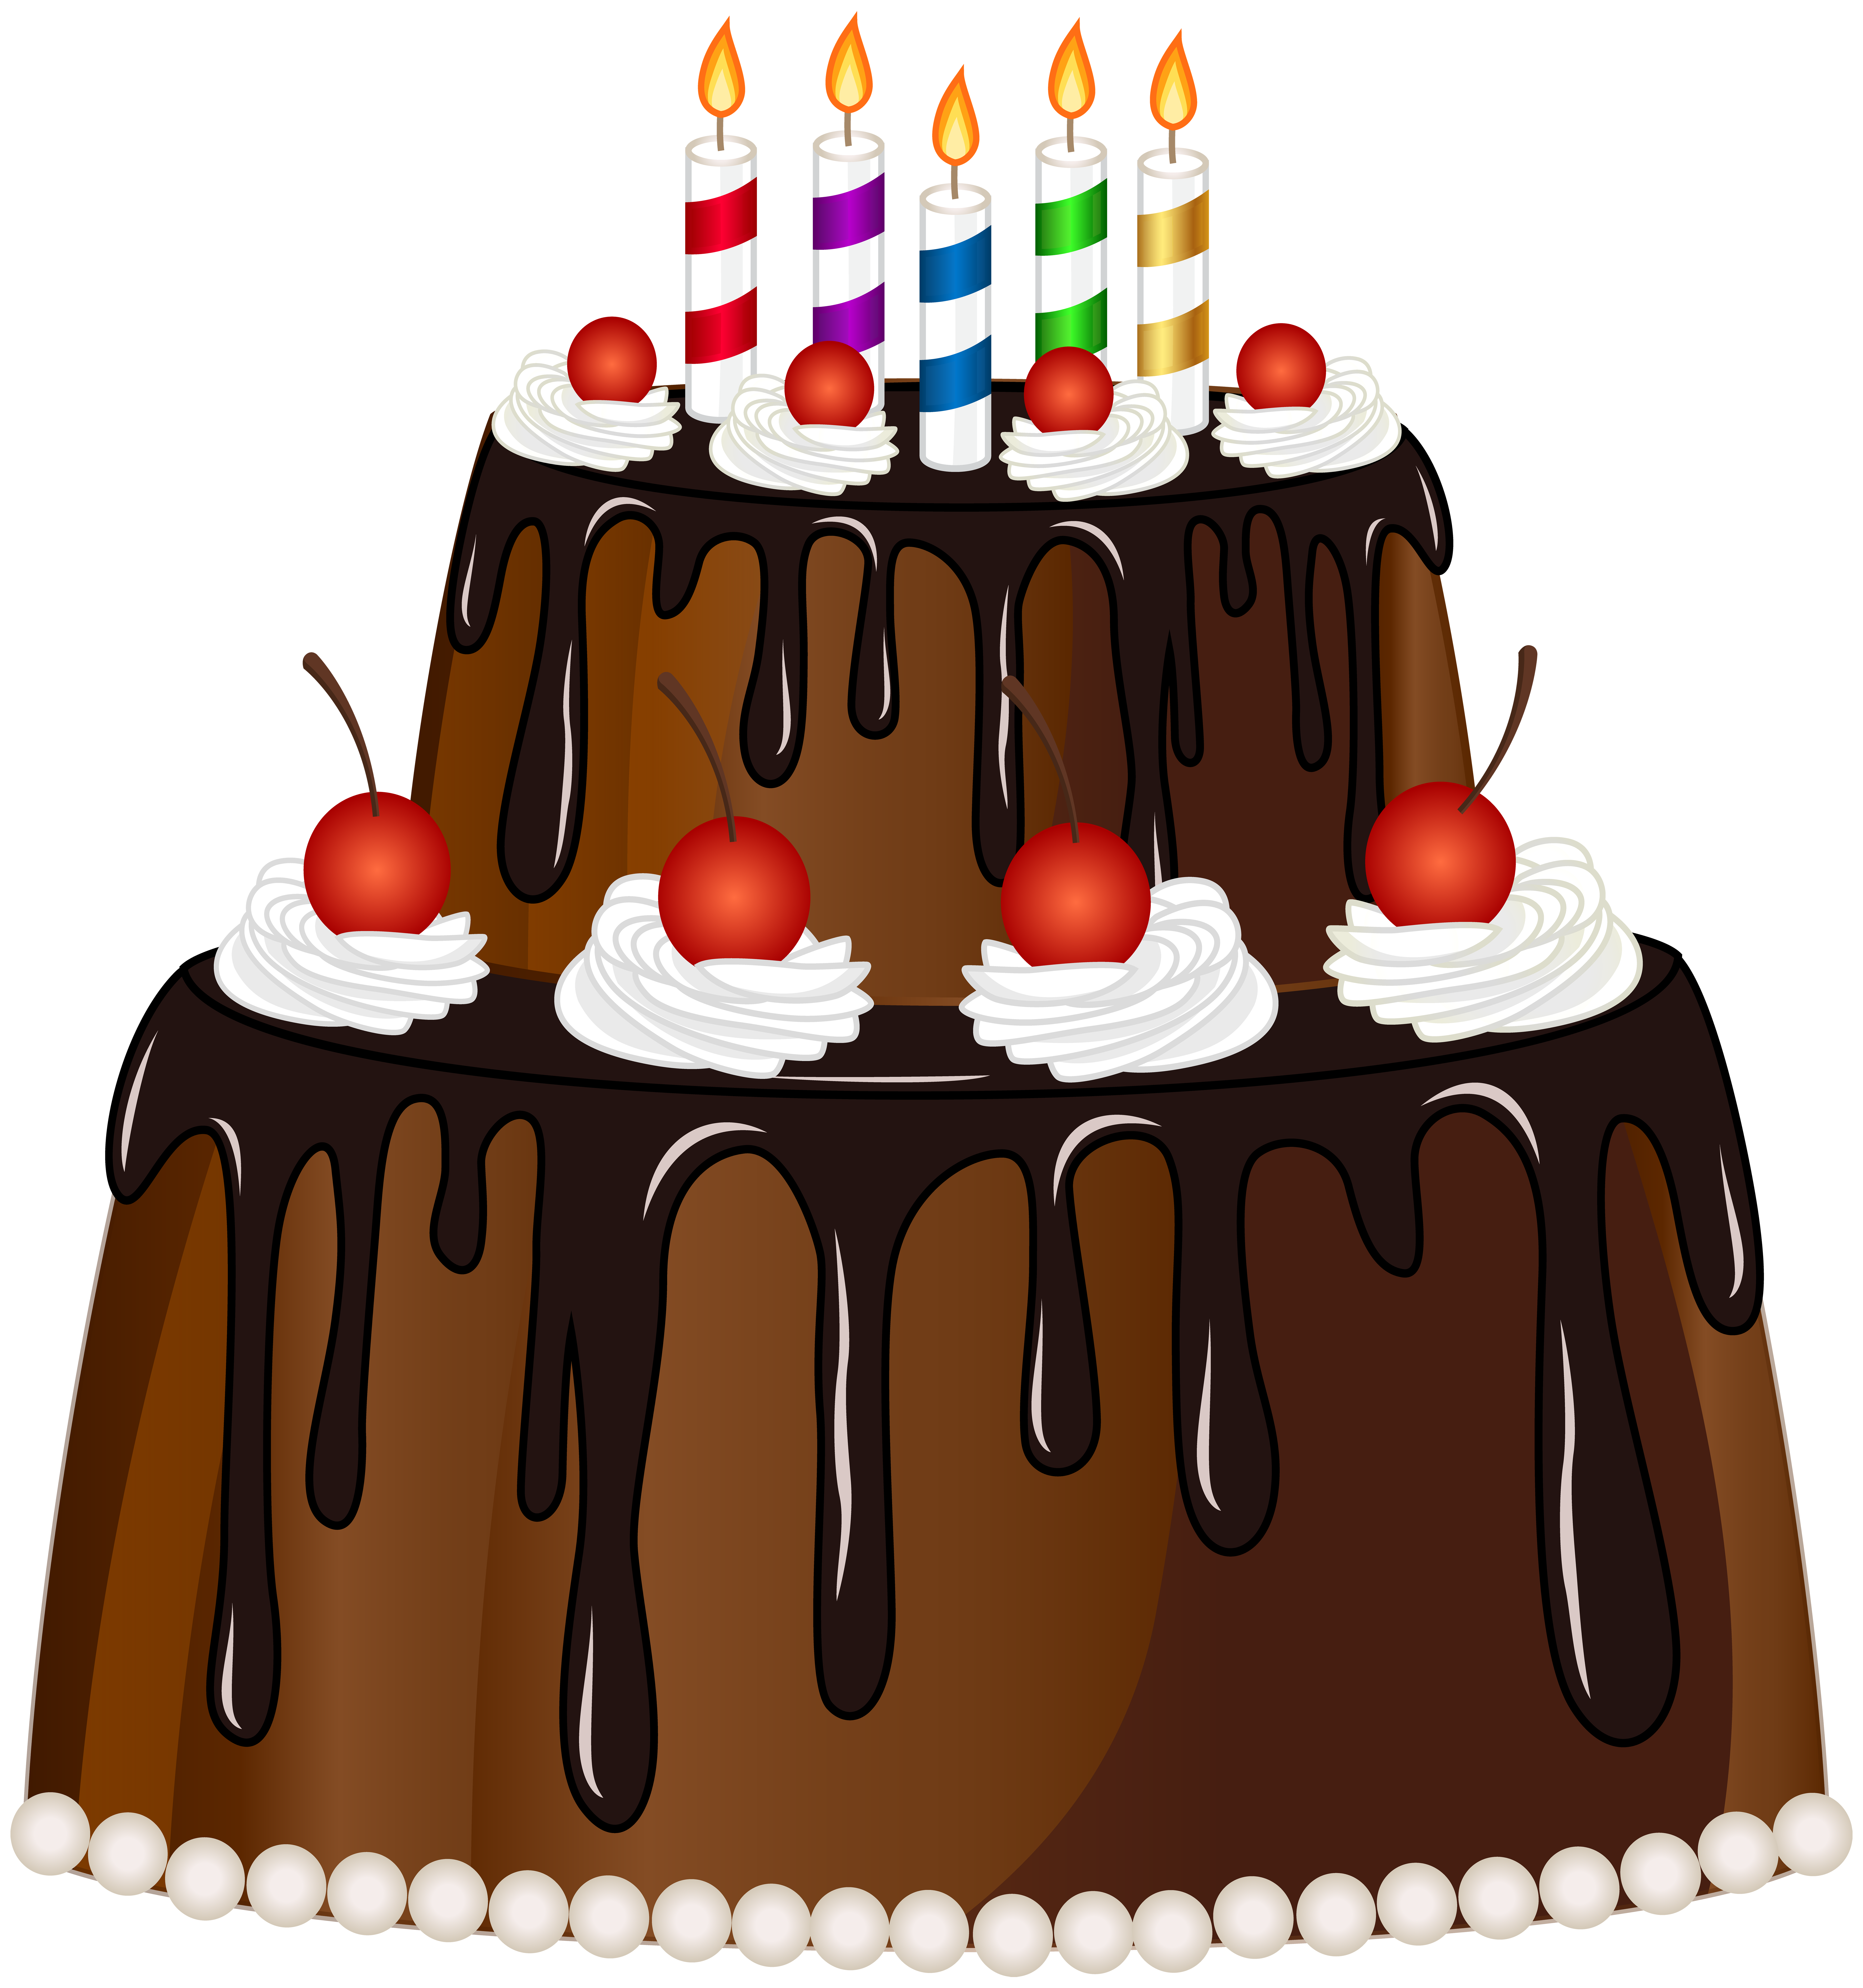 Free clipart birthday cake with candles vector transparent stock Birthday Cake with Candles PNG Clip Art Image | Gallery ... vector transparent stock